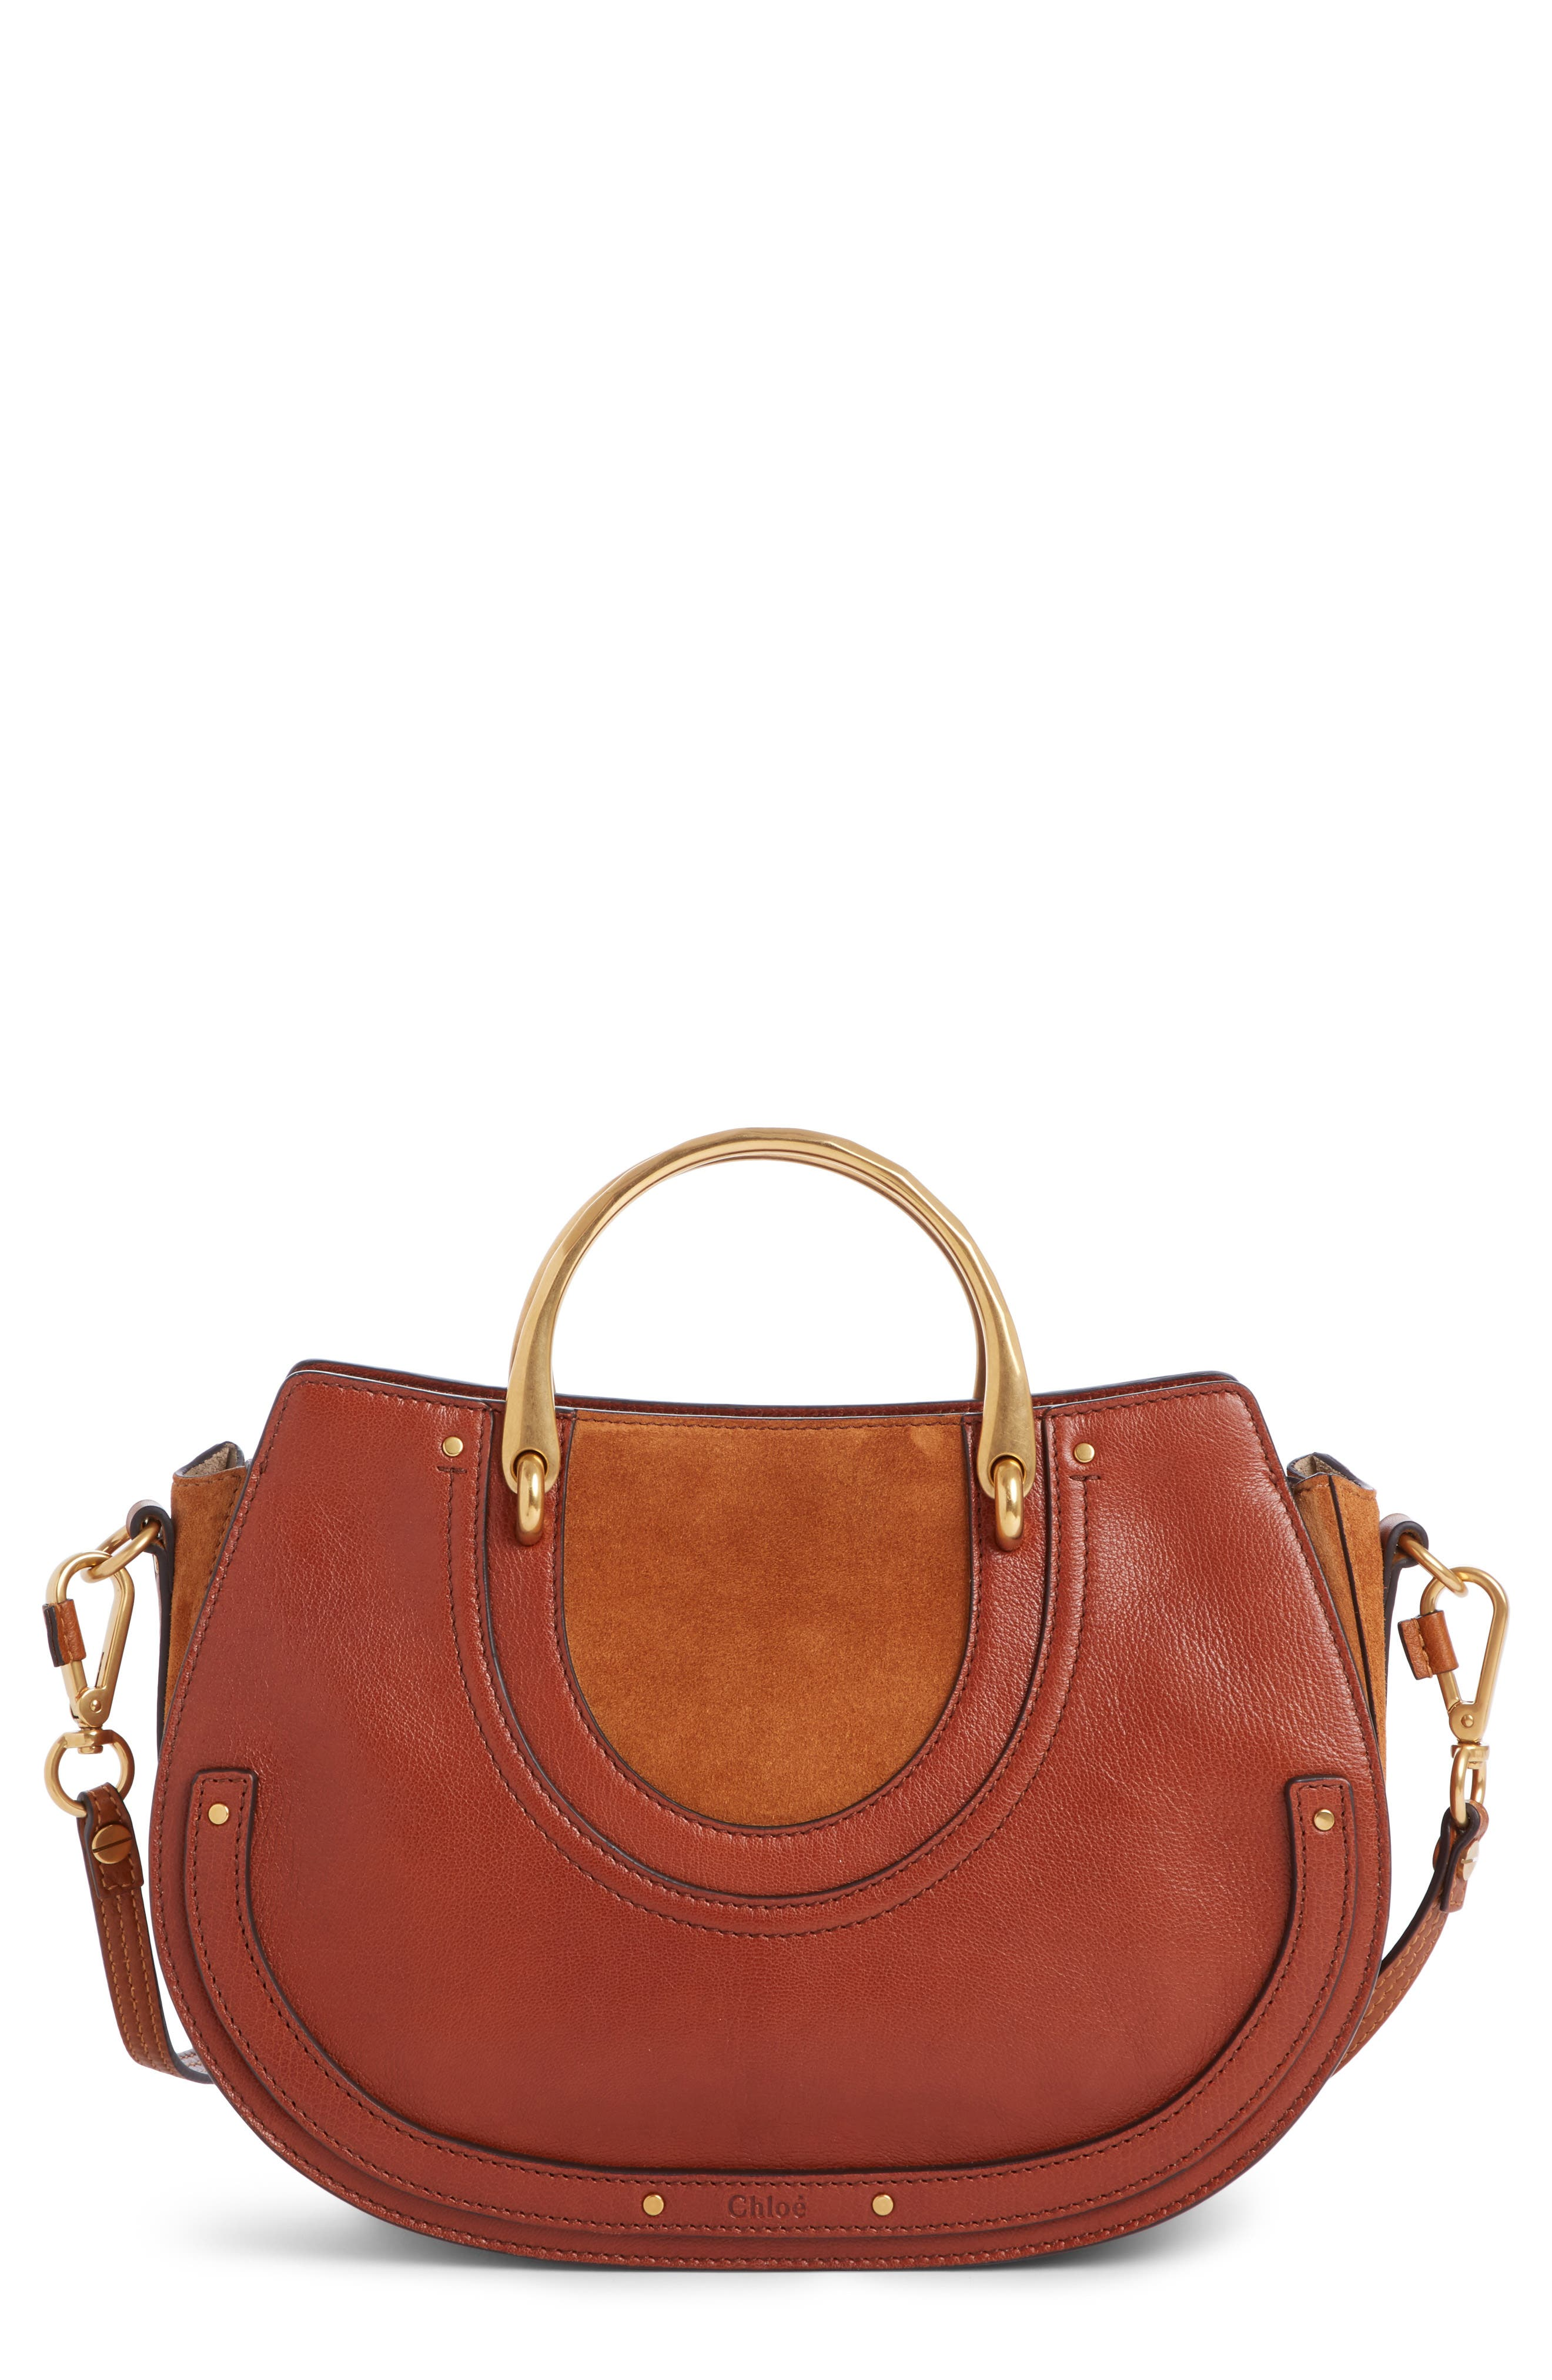 Alternate Image 1 Selected - Chloé Medium Pixie Top Handle Leather Satchel